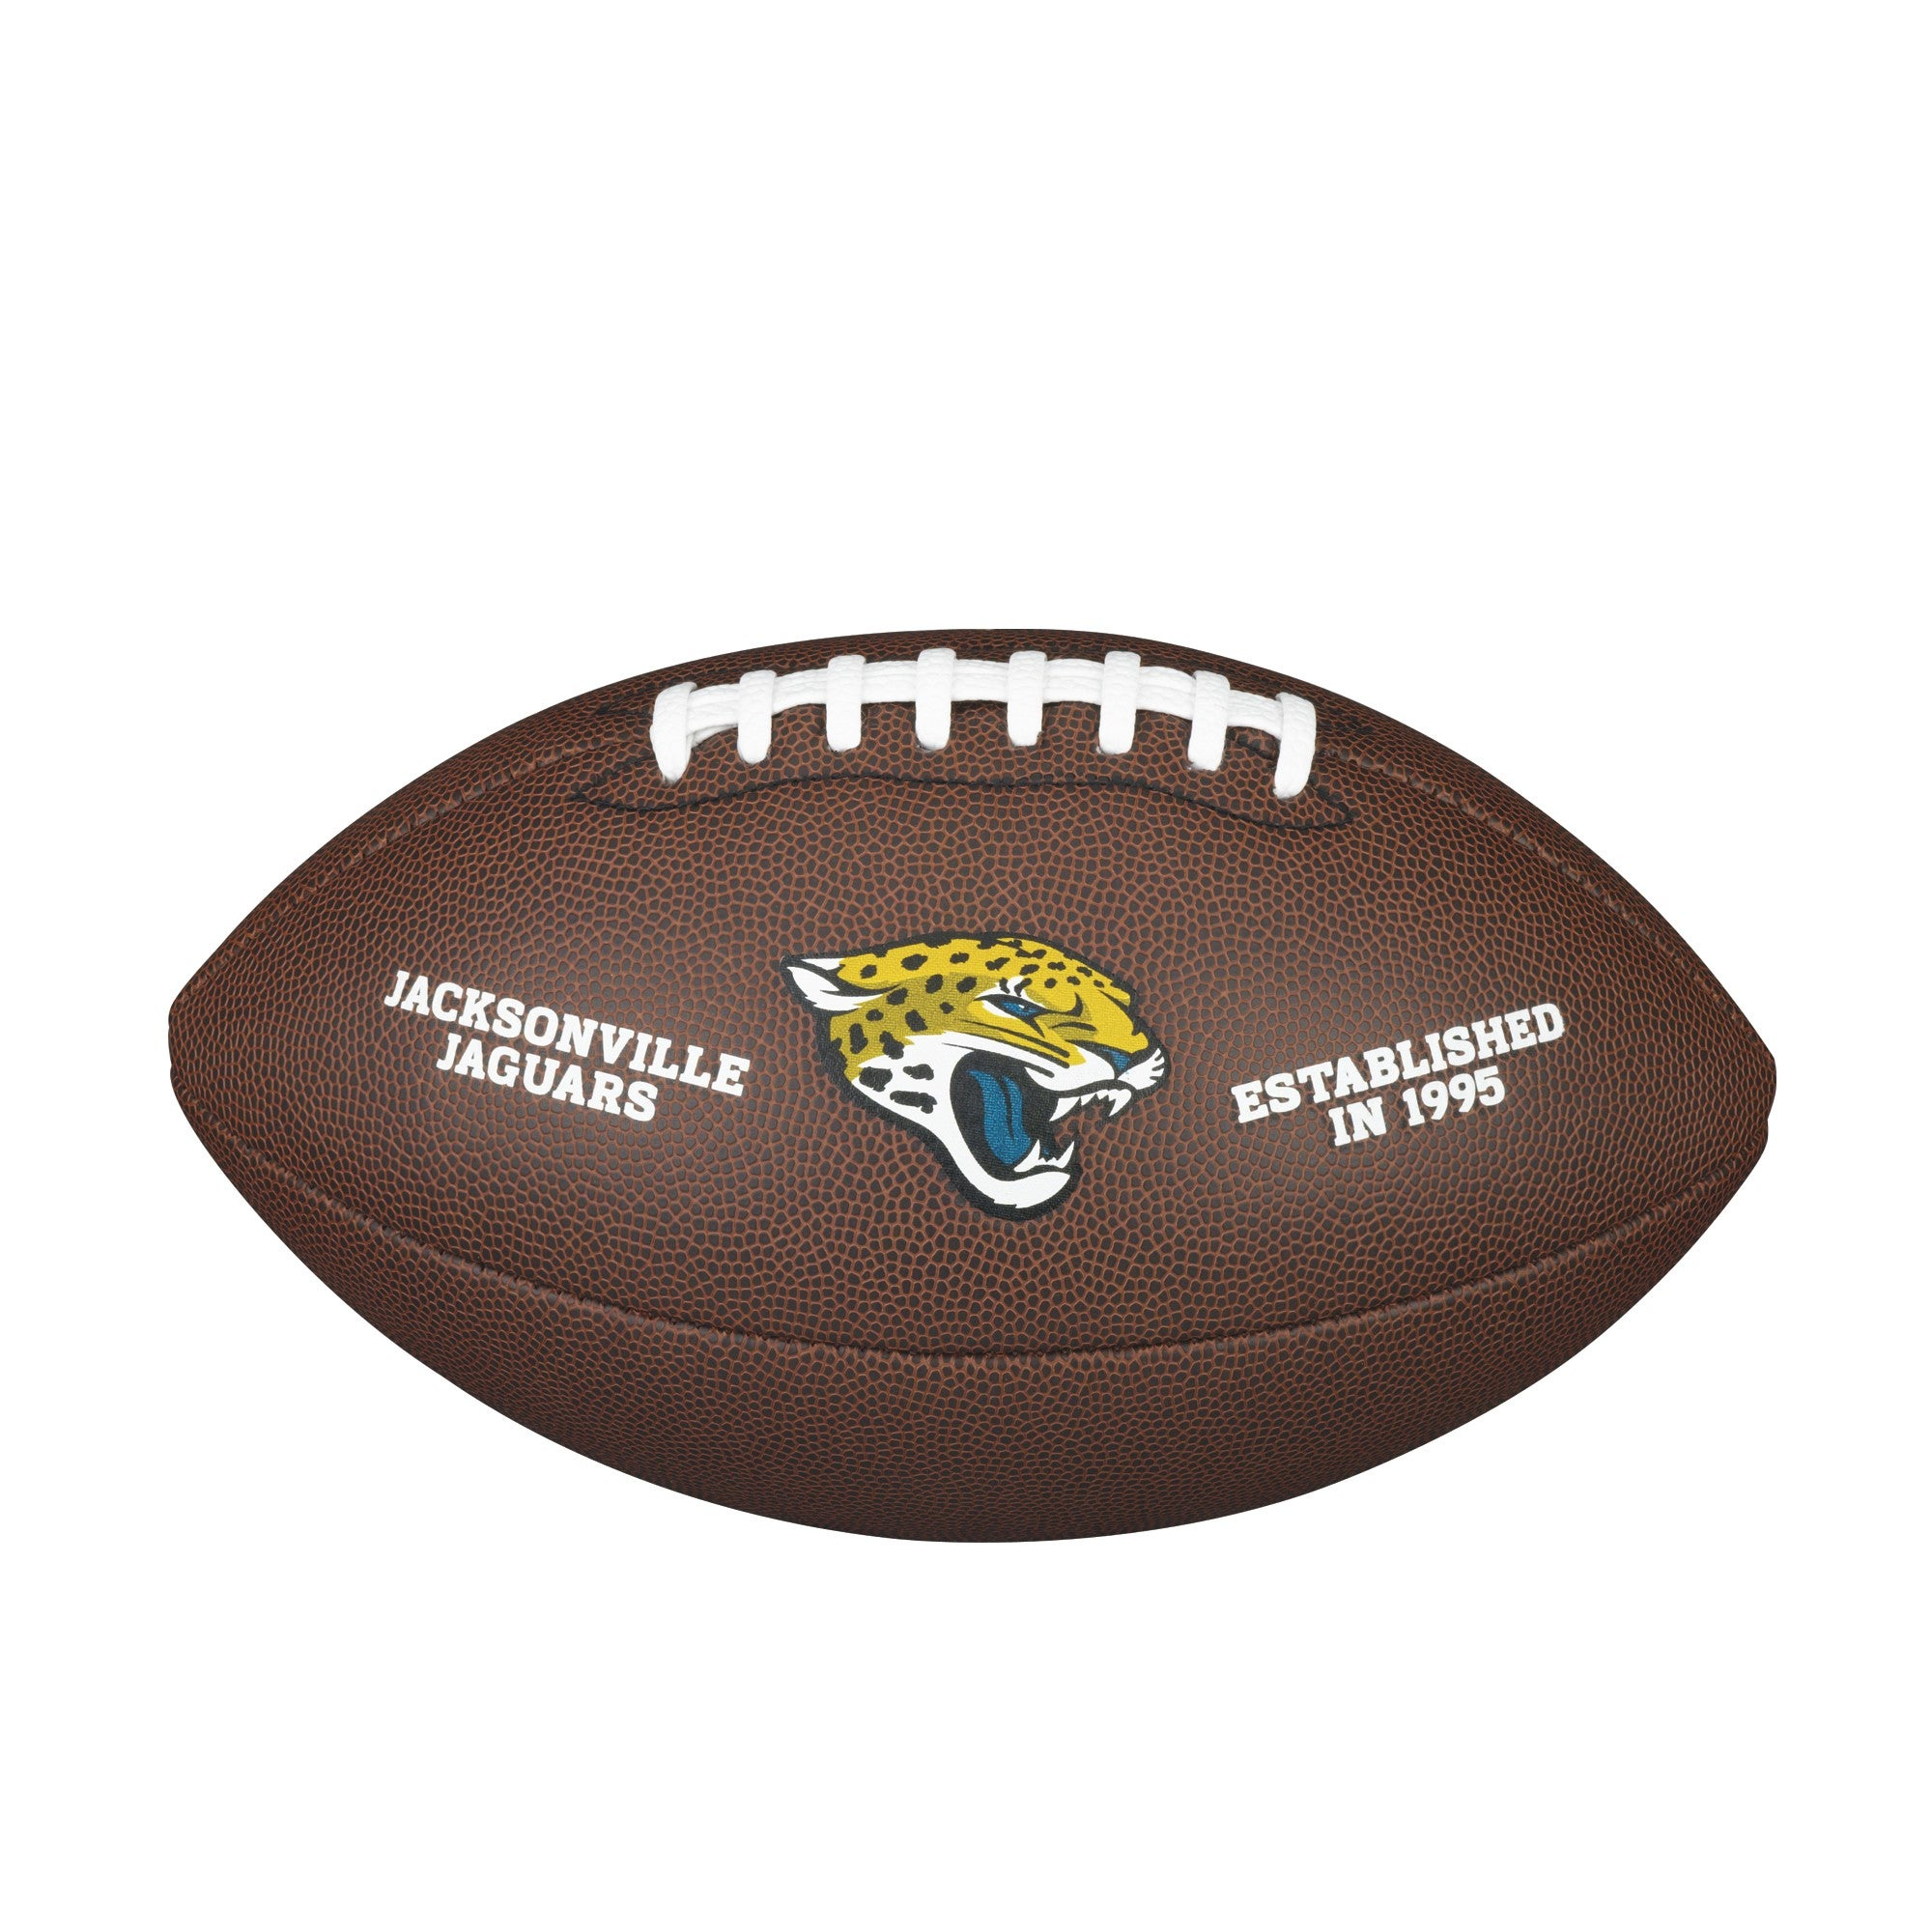 NFL TEAM LOGO COMPOSITE FOOTBALL - OFFICIAL, JACKSONVILLE JAGUARS